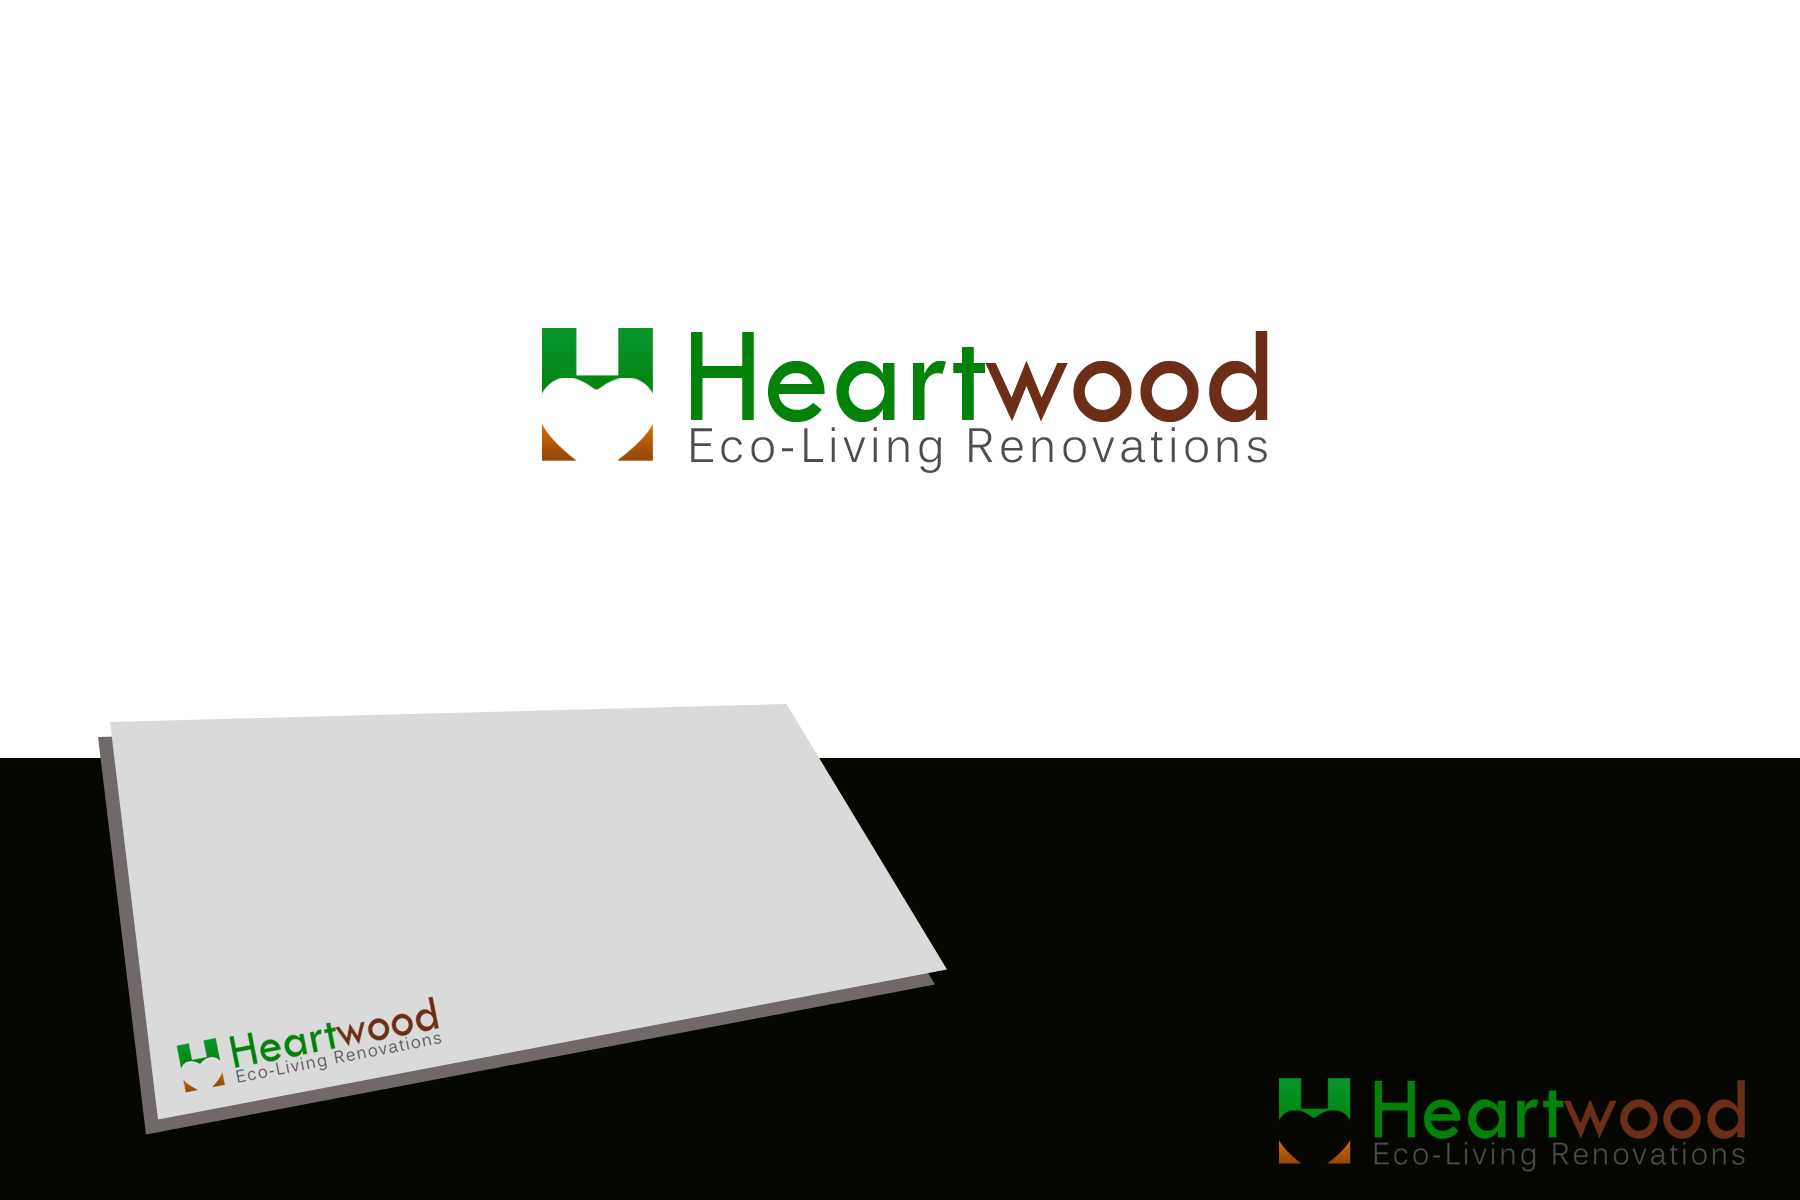 Logo Design by golden-hand - Entry No. 12 in the Logo Design Contest New Logo Design for Heartwood Eco-Living Renovations.